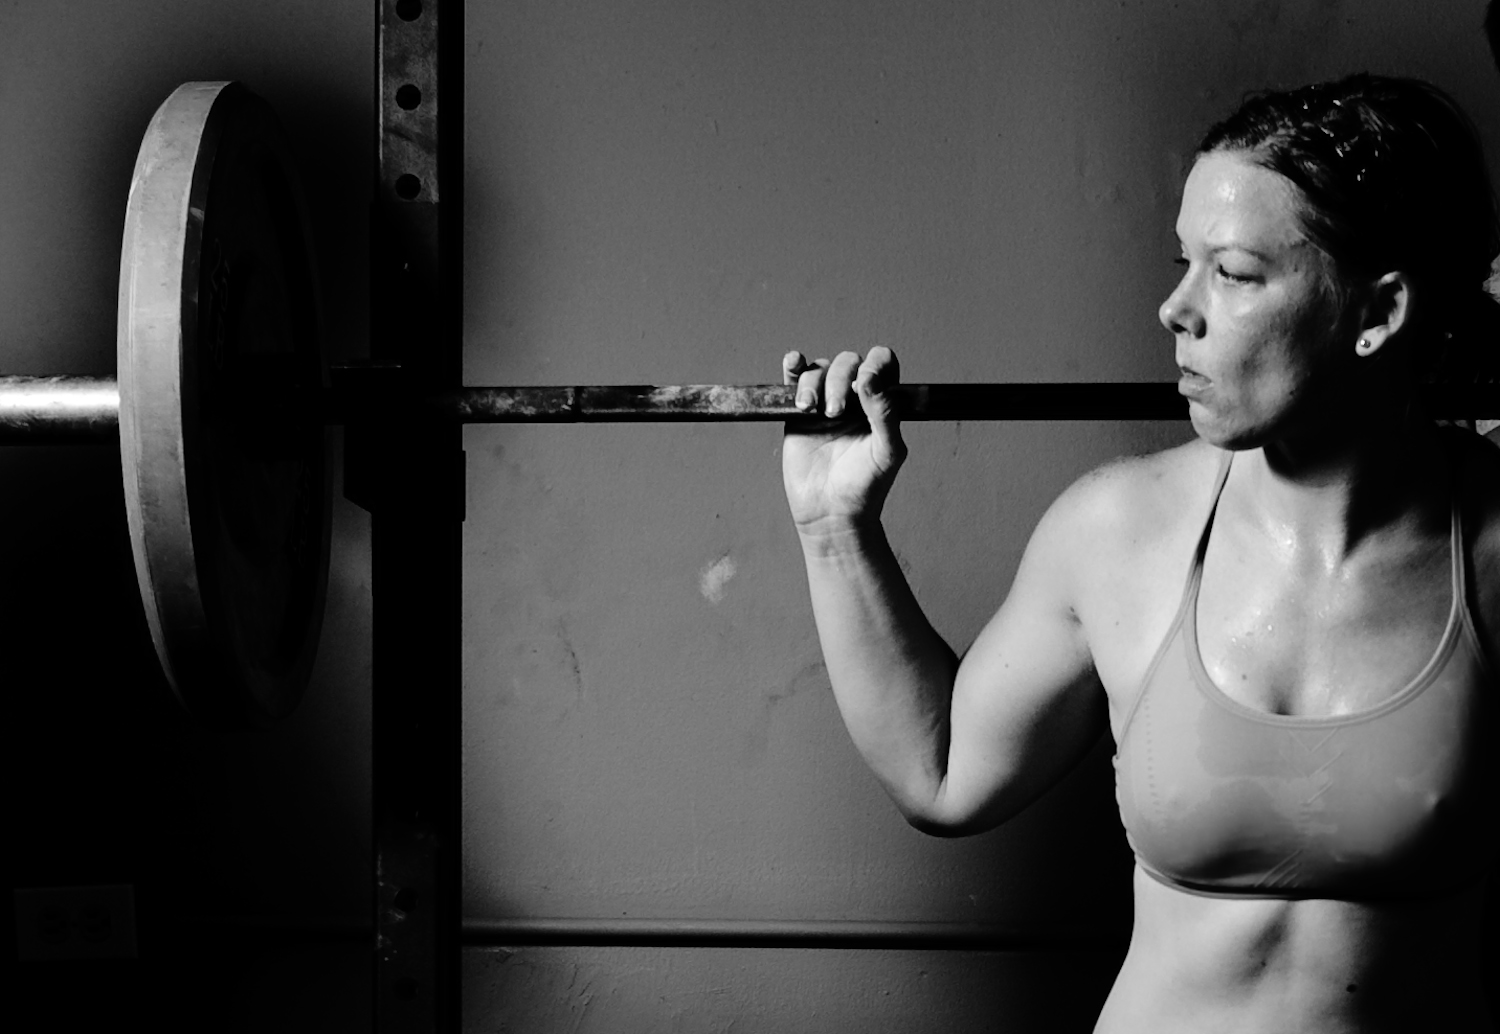 CrossFit – Fitness for strong women by killcliff.com